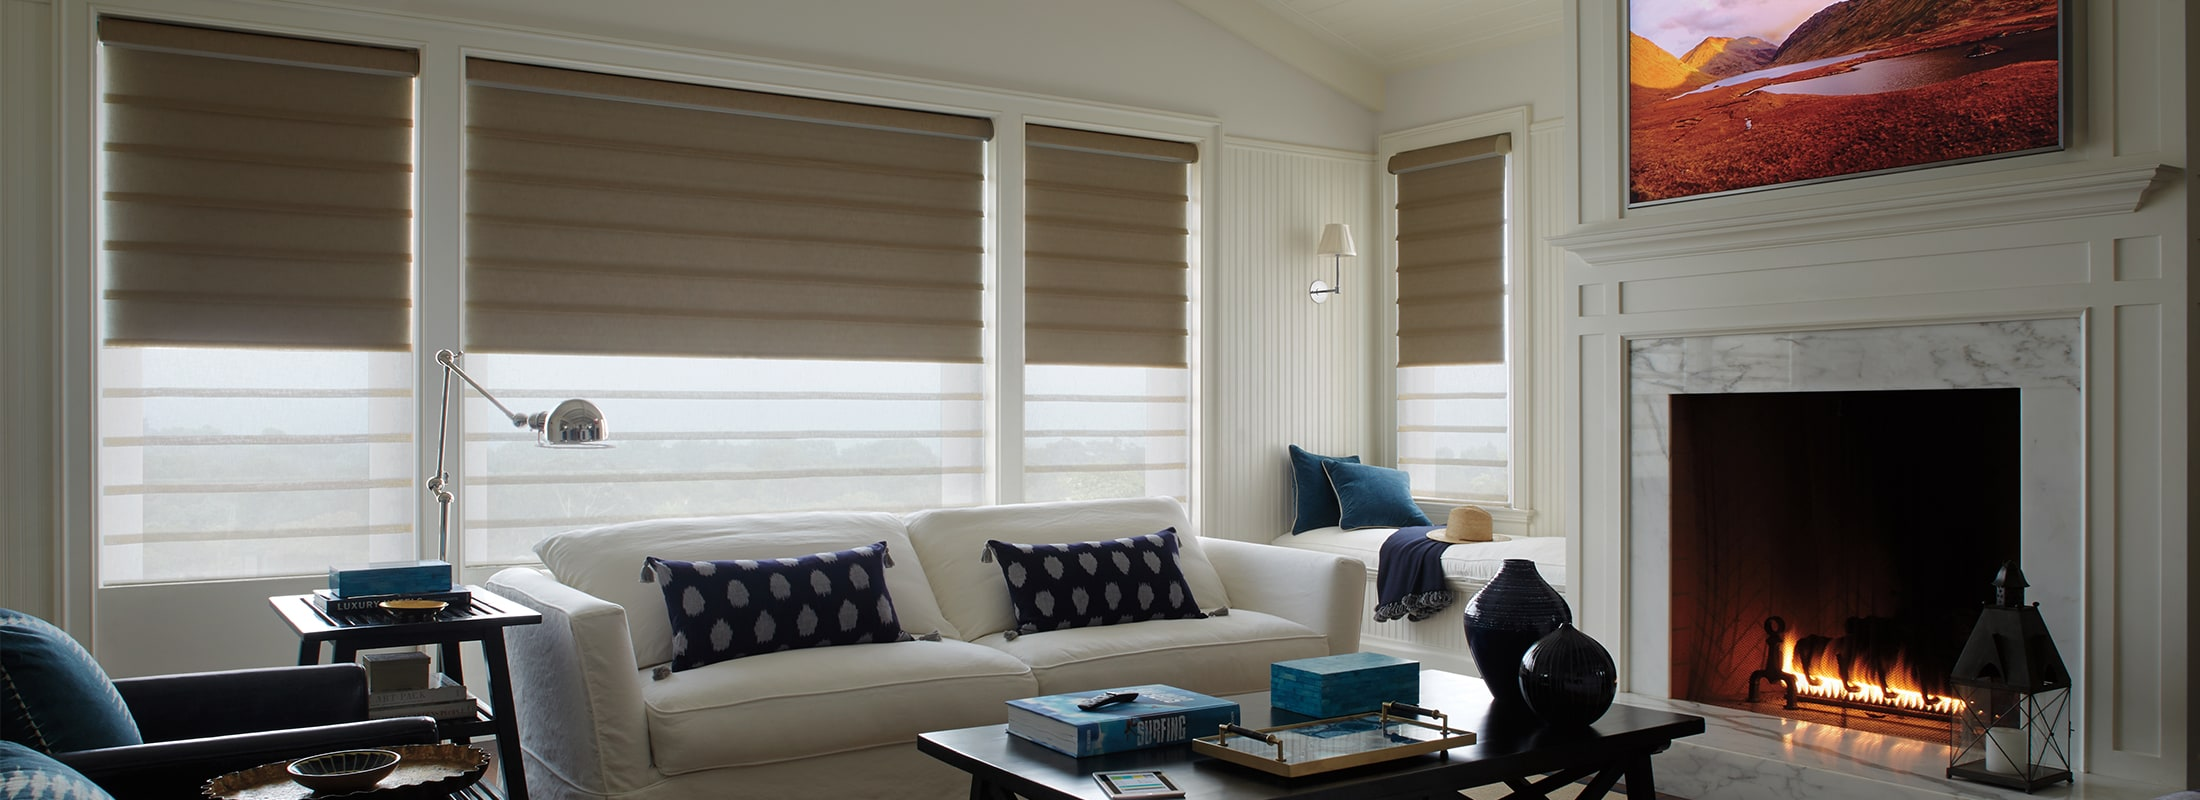 Modern Roman Shades In Leela Escape Vignette